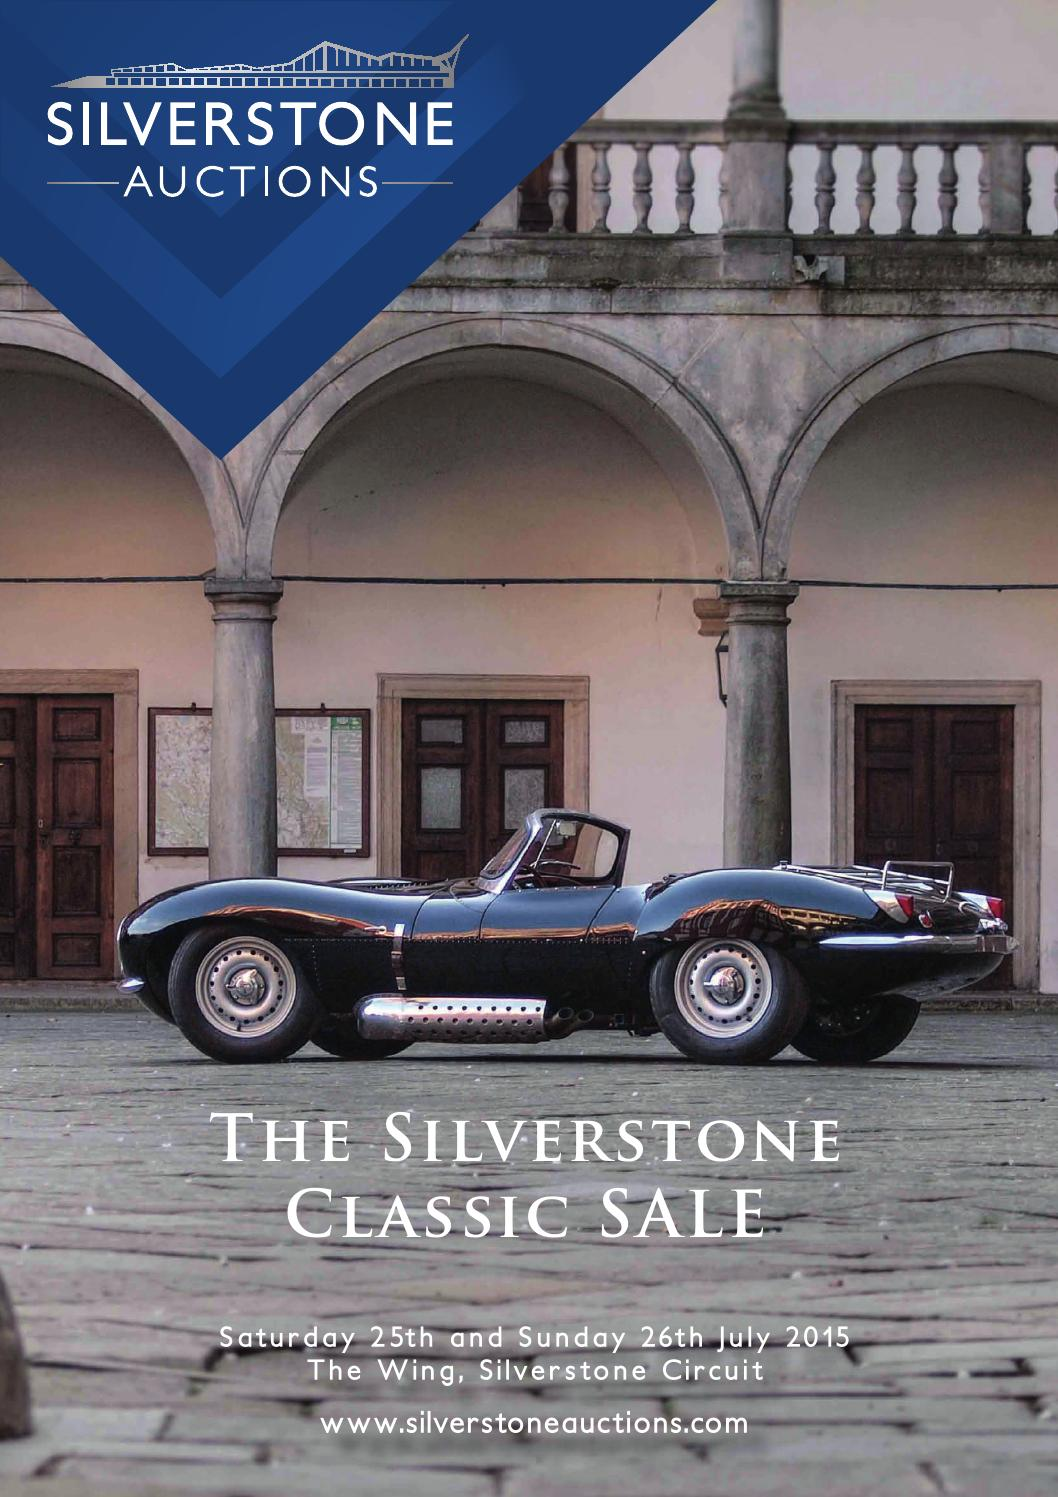 Alfa Romeo Wiring Diagram 5 10 From 54 Votes The Silverstone Classic Sale 2015 By Caroline Smith Peninsula Design Issuu